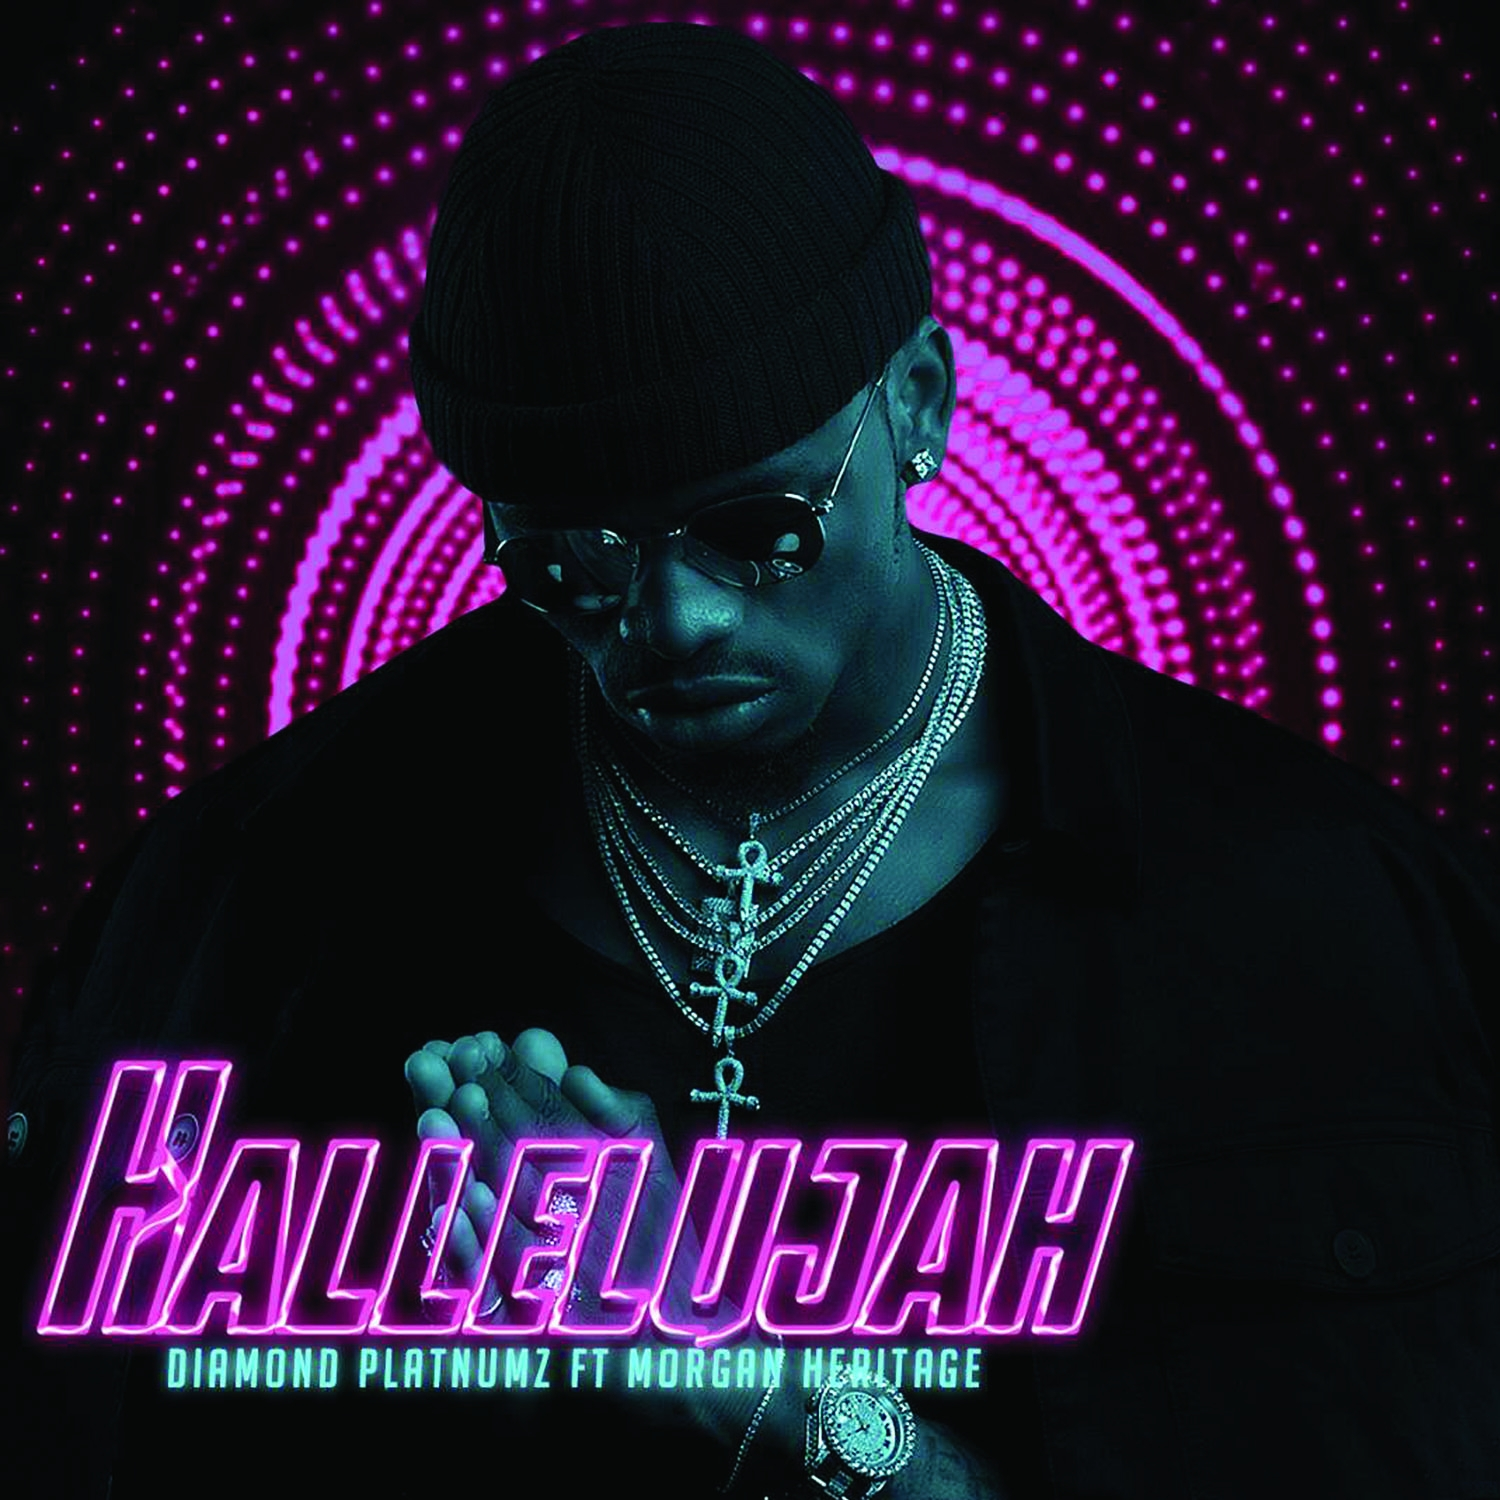 Diamond Platnumz feat Morgan Heritage - Hallelujah - Artwork